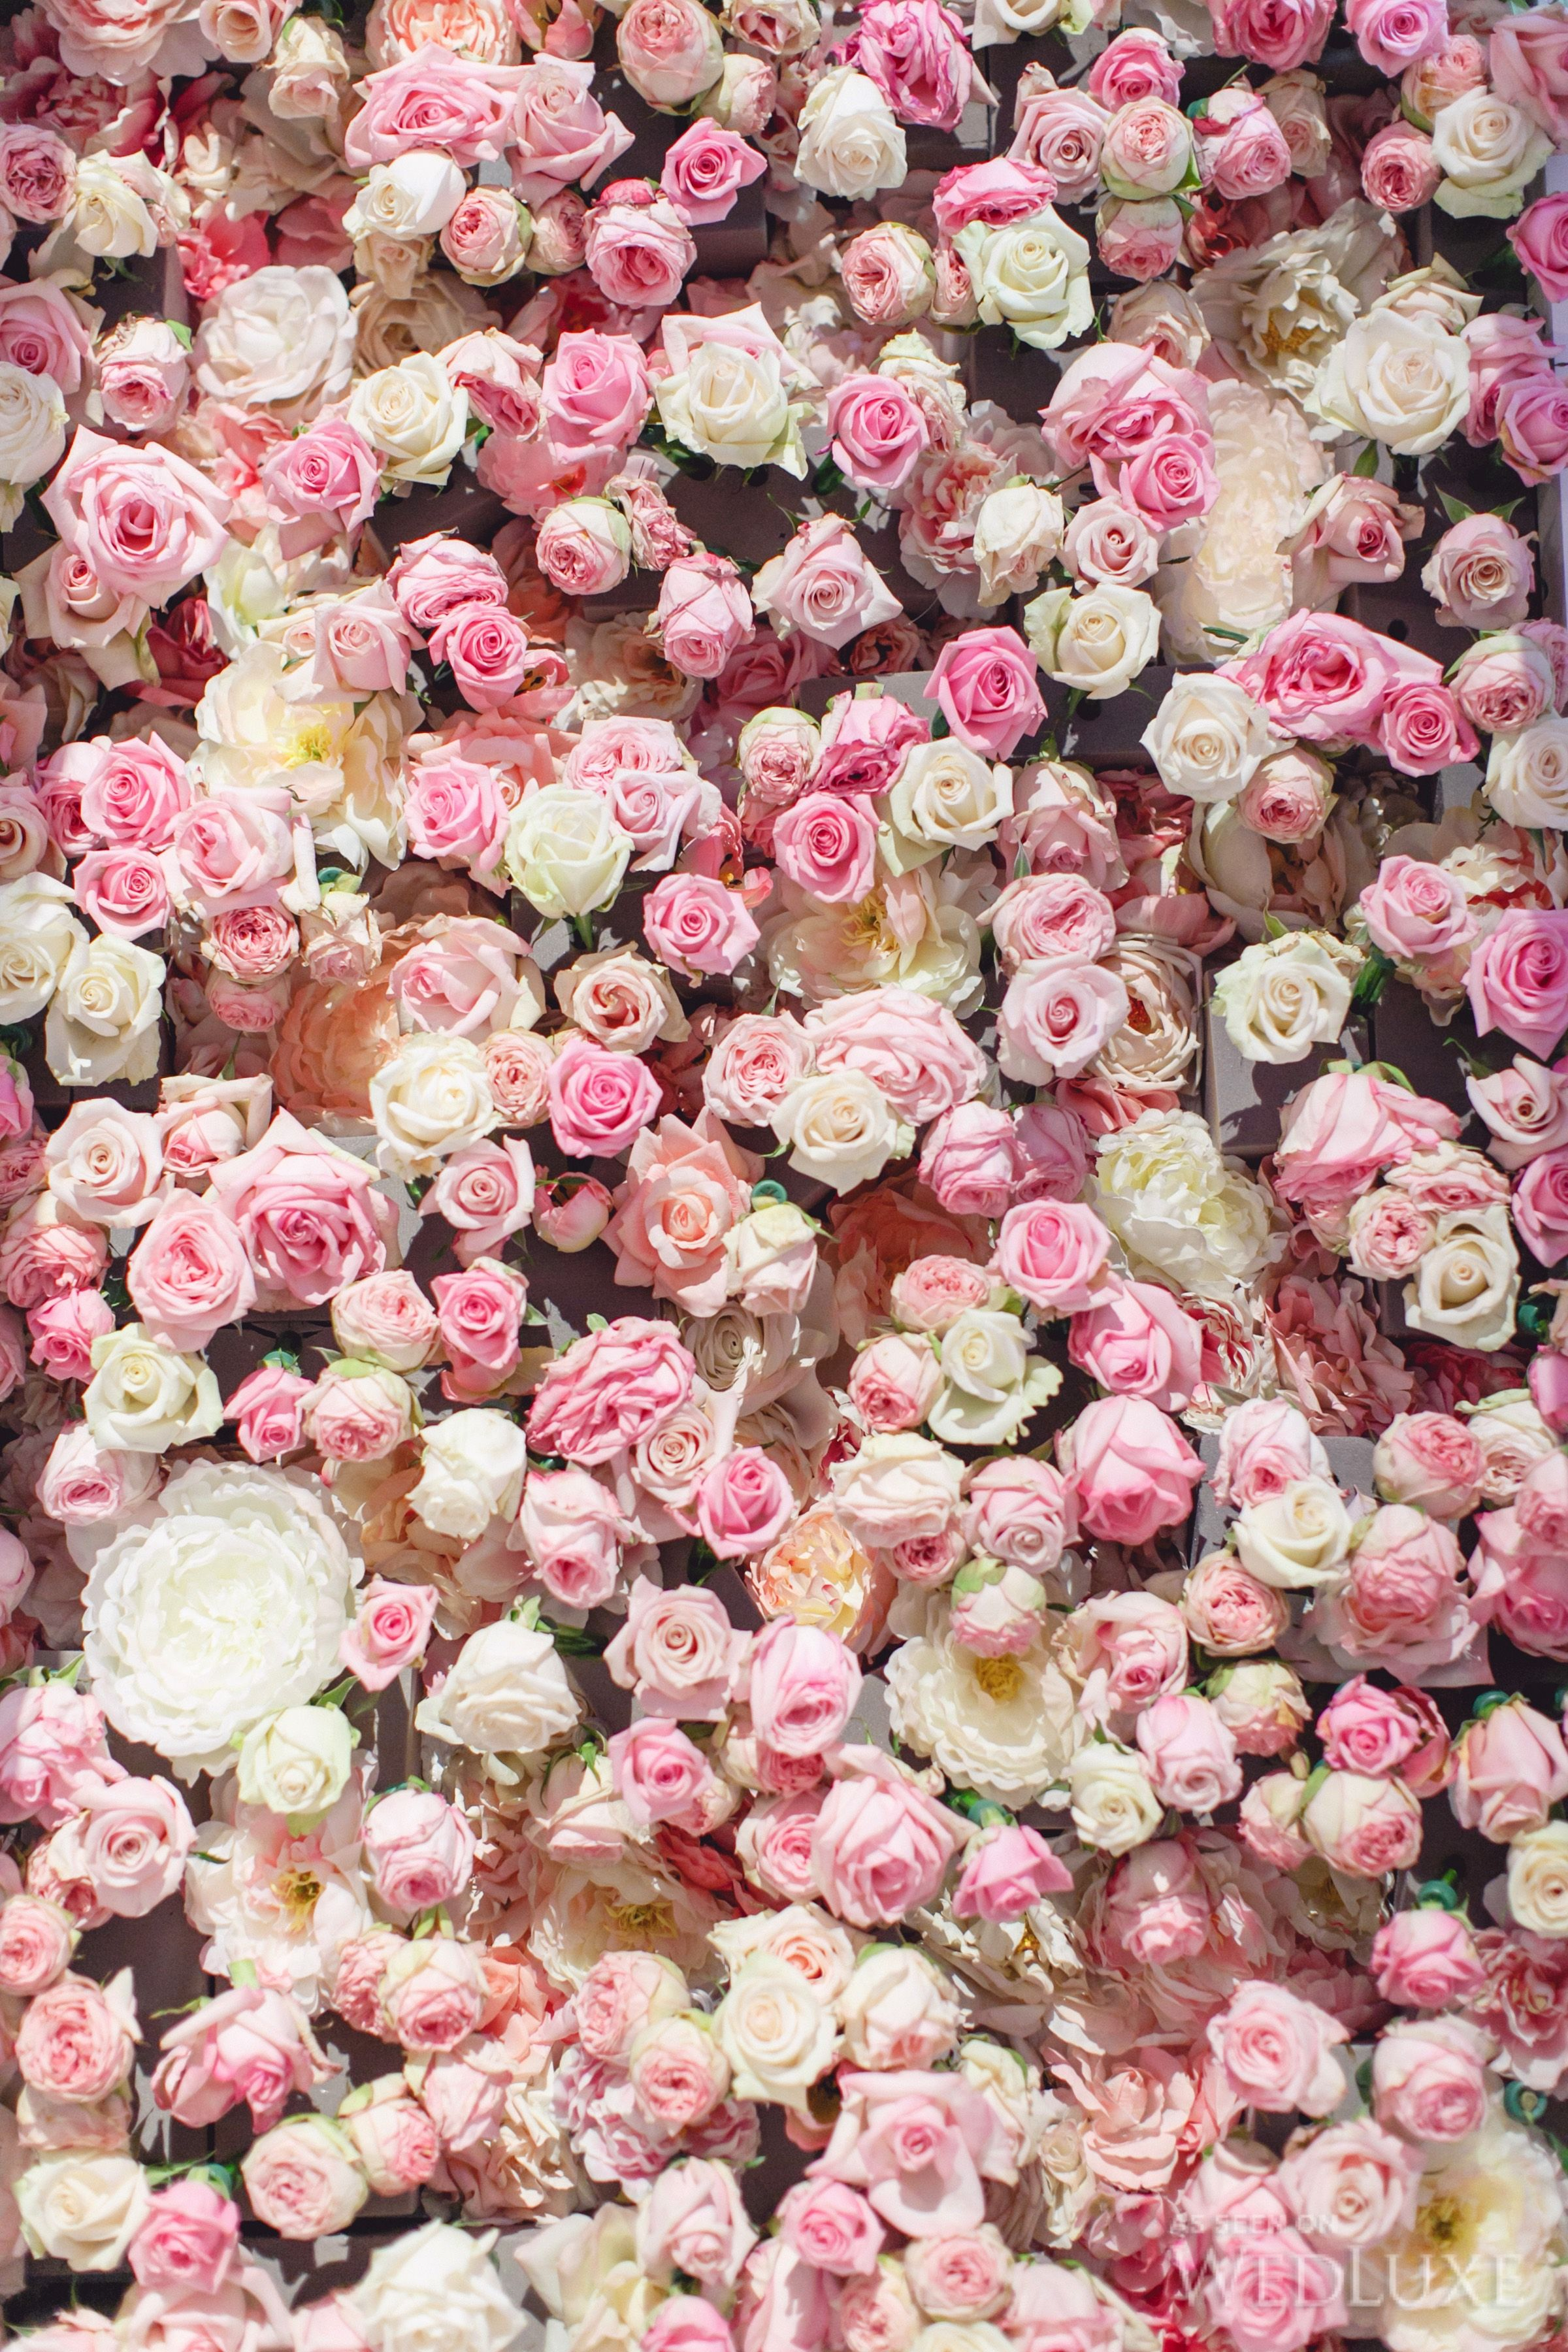 Gallery From Last Event Flower aesthetic, Pink flowers